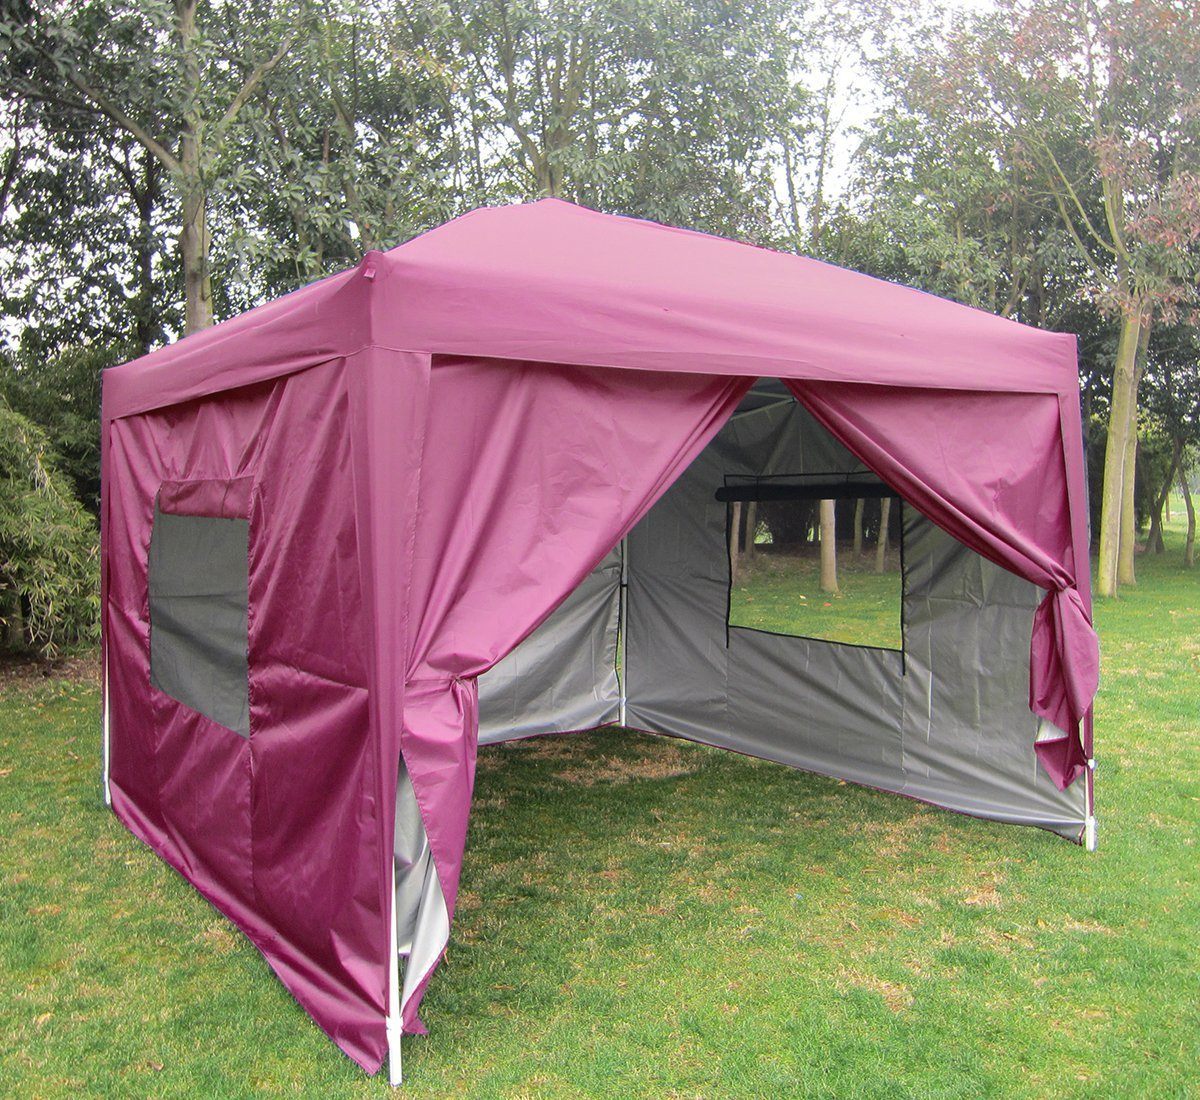 Big Sale!Quictent privacy 10x10 Mesh Curtain EZ Pop Up Party Tent Canopy Gazebo 100% Waterproof-7 Colors (Pink) by